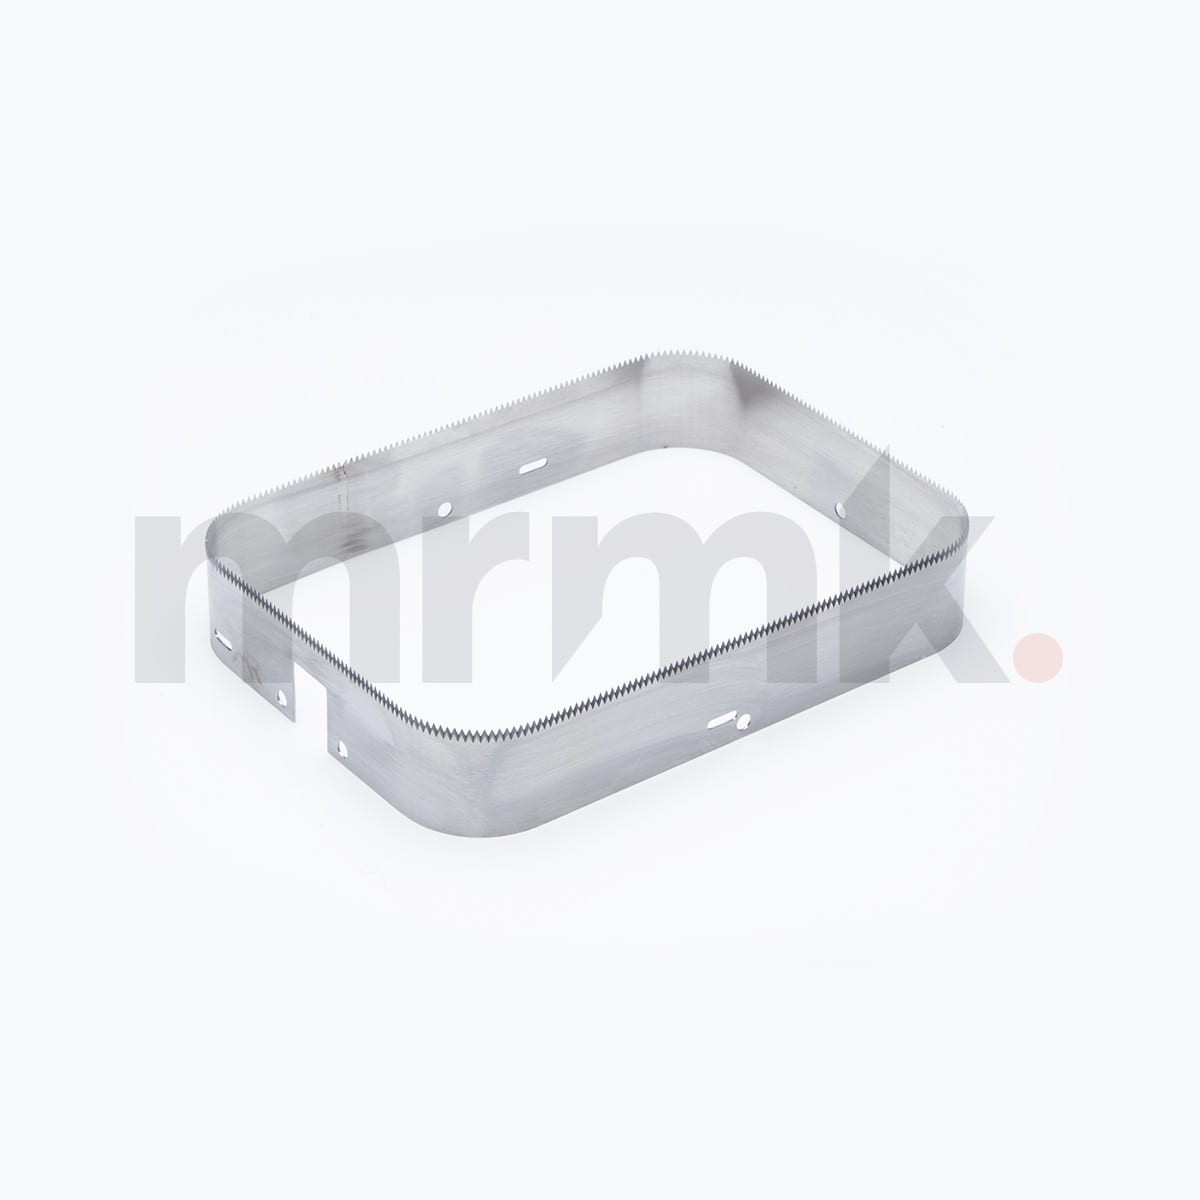 VC999 Compatible Tray Seal Knife